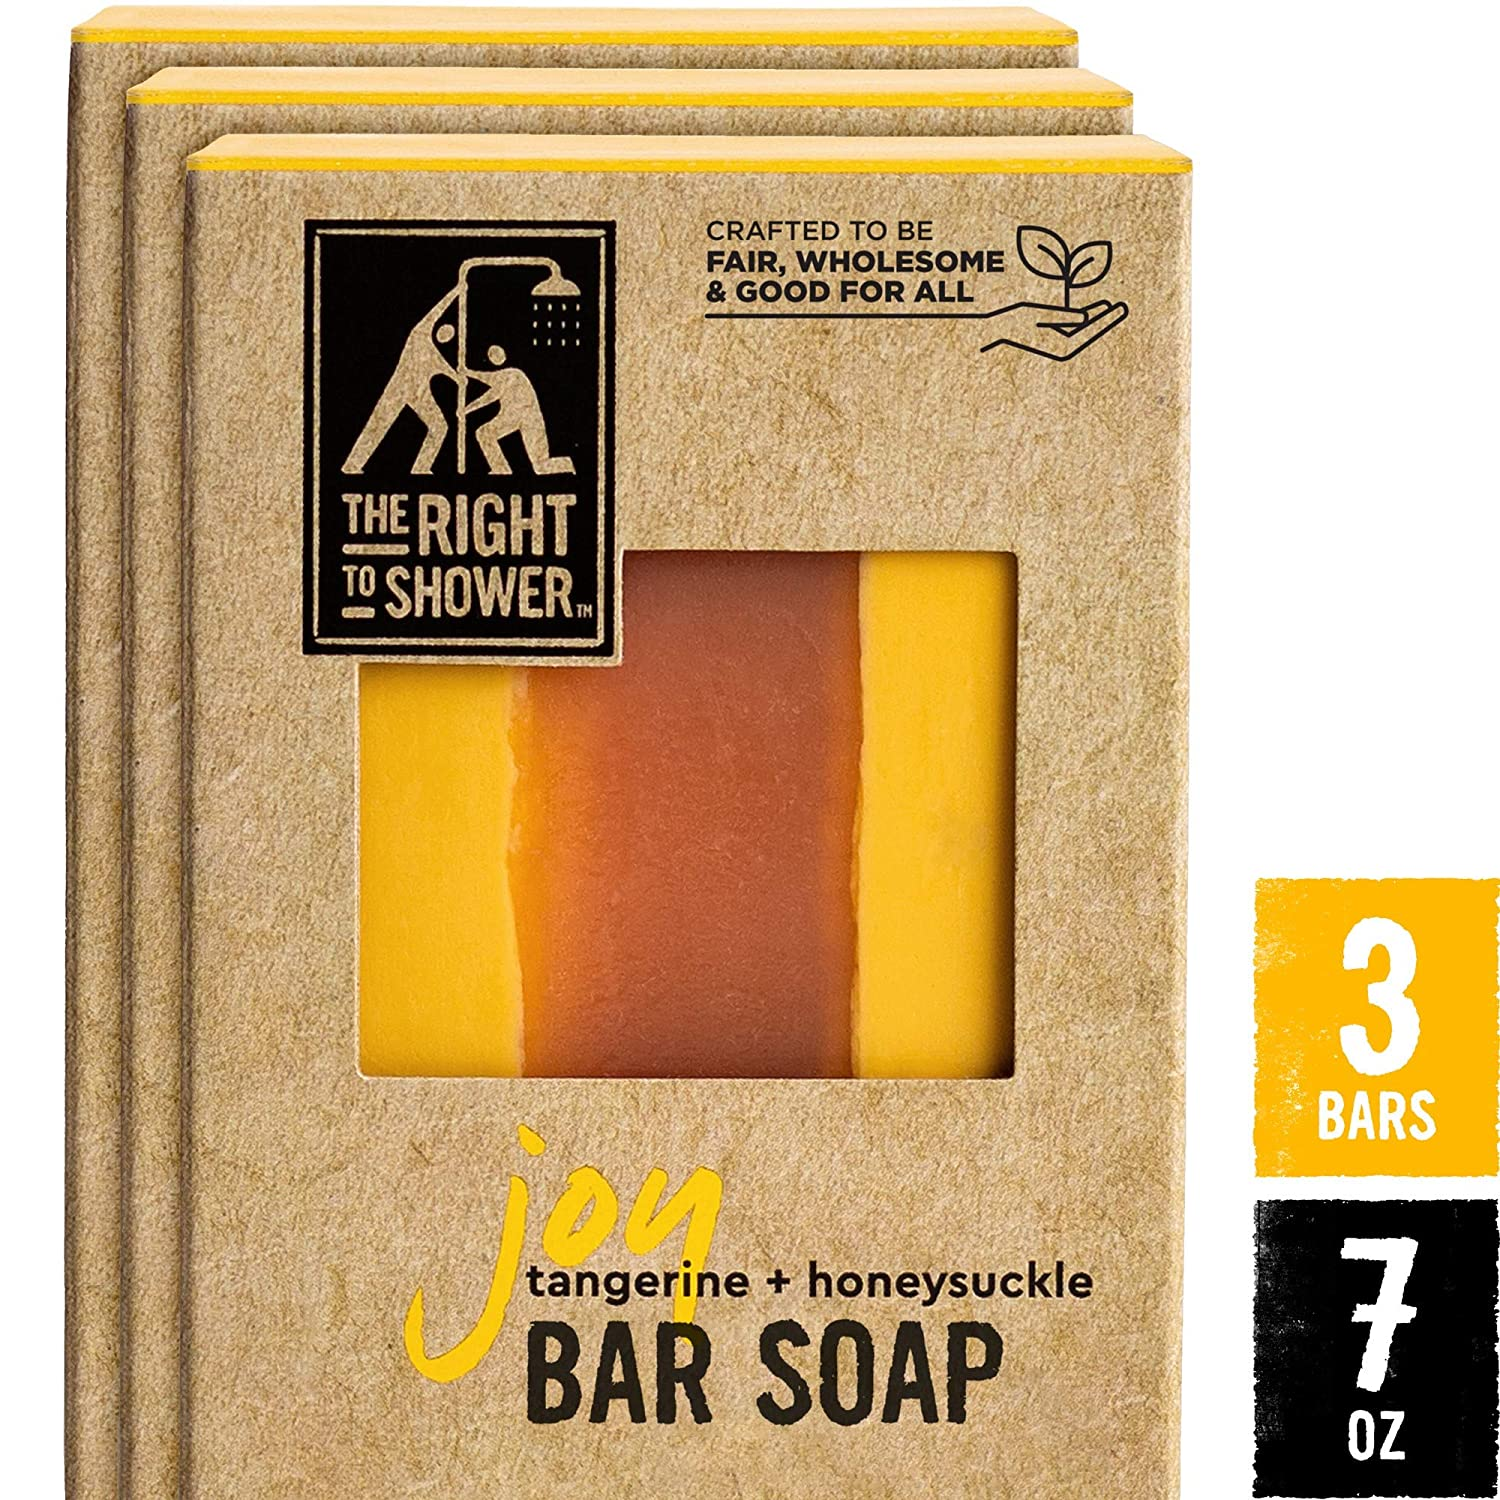 The Right To Shower Bar Soap, Joy, 7 oz, Pack of 3 : Beauty